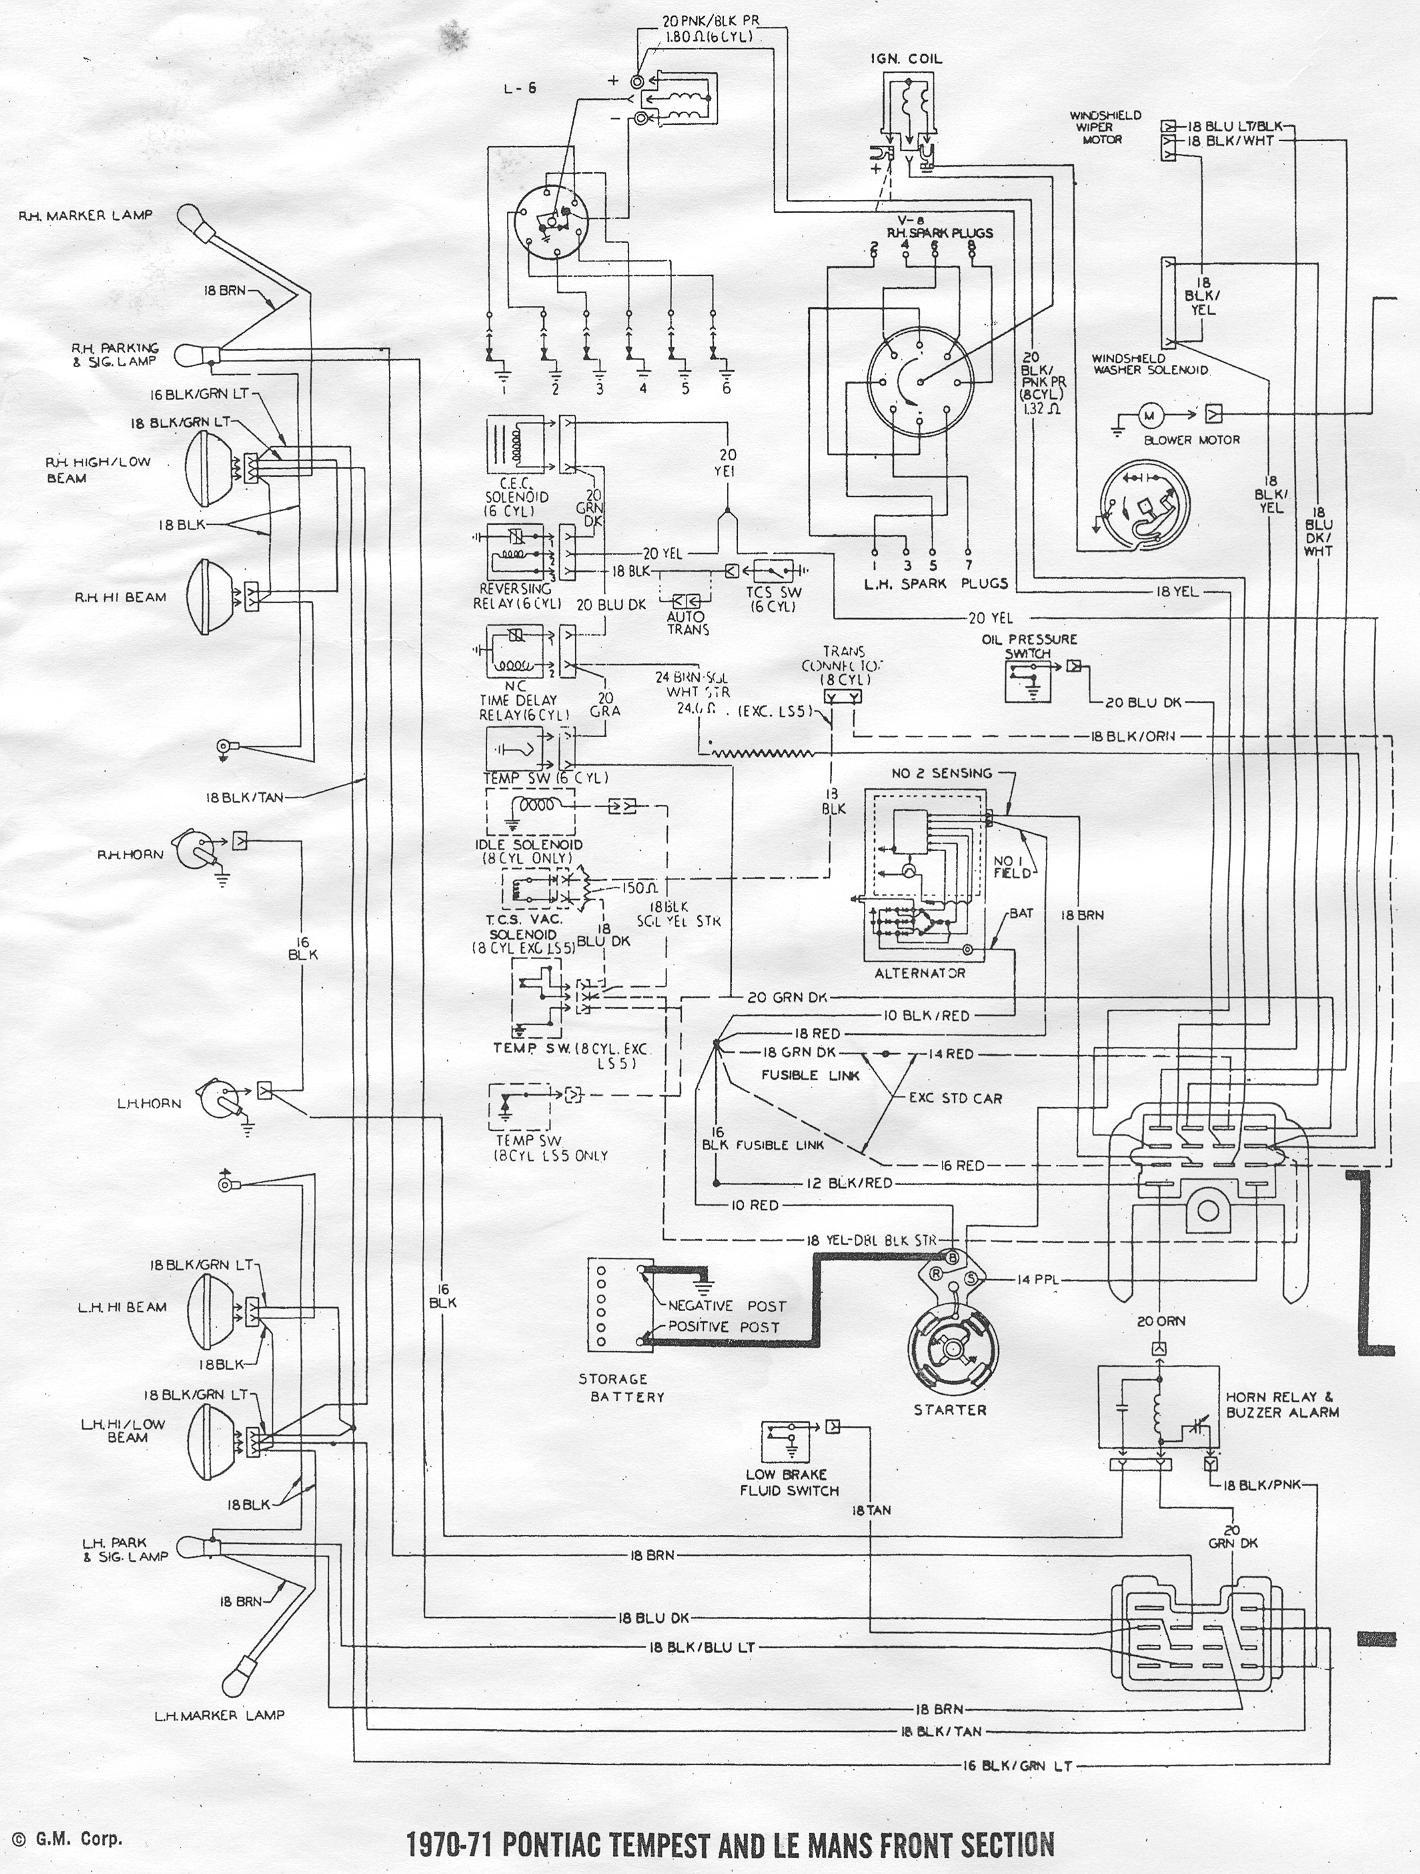 saturn ion radio wiring diagram image 2004 saturn ion wiring diagram 2004 image wiring on 2007 saturn ion 2 radio